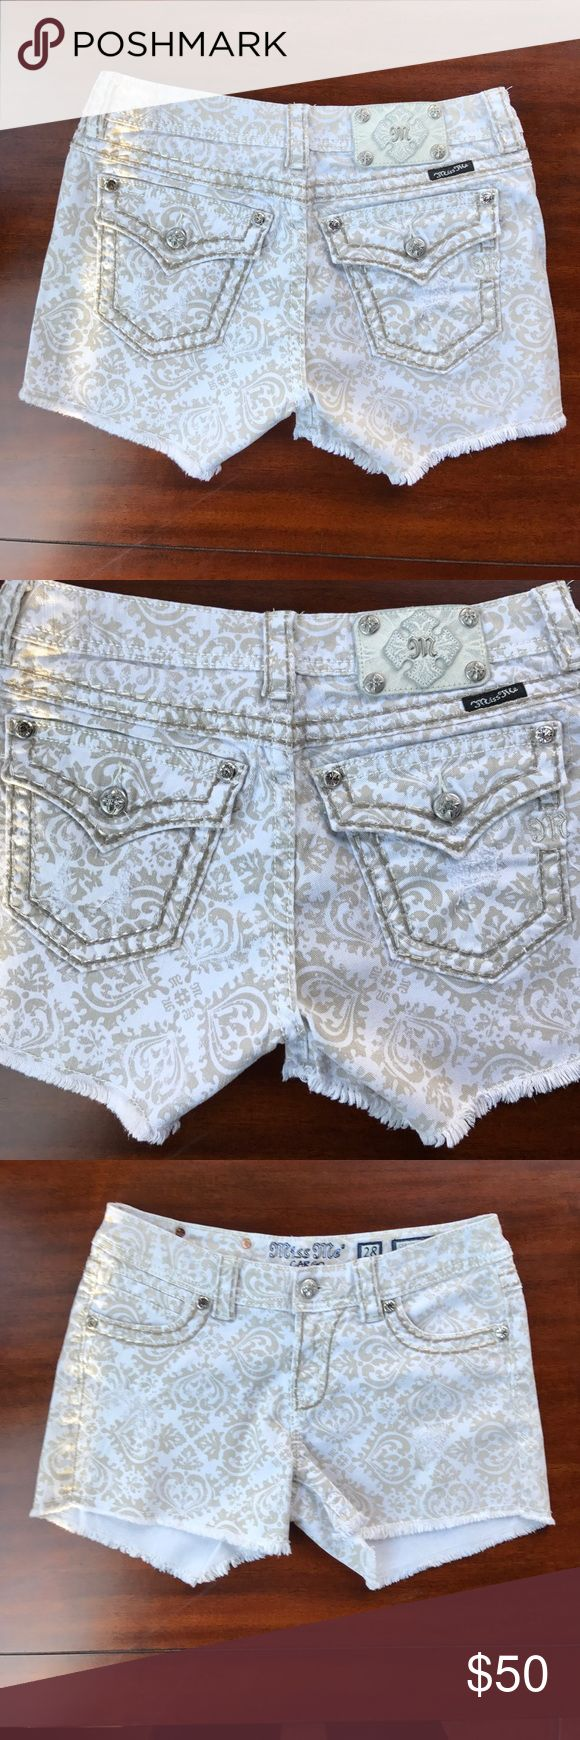 Miss Me Jean White and beige  Shorts Size 28 Miss Me Jean shorts White and beige cutt off style/ size 28/ used but still in great condition and comes from a smoke free home/ please use the offer button to make any offers and do not make offers in the comment section thank you ❤️😃✌️❤️ Miss Me Shorts Jean Shorts